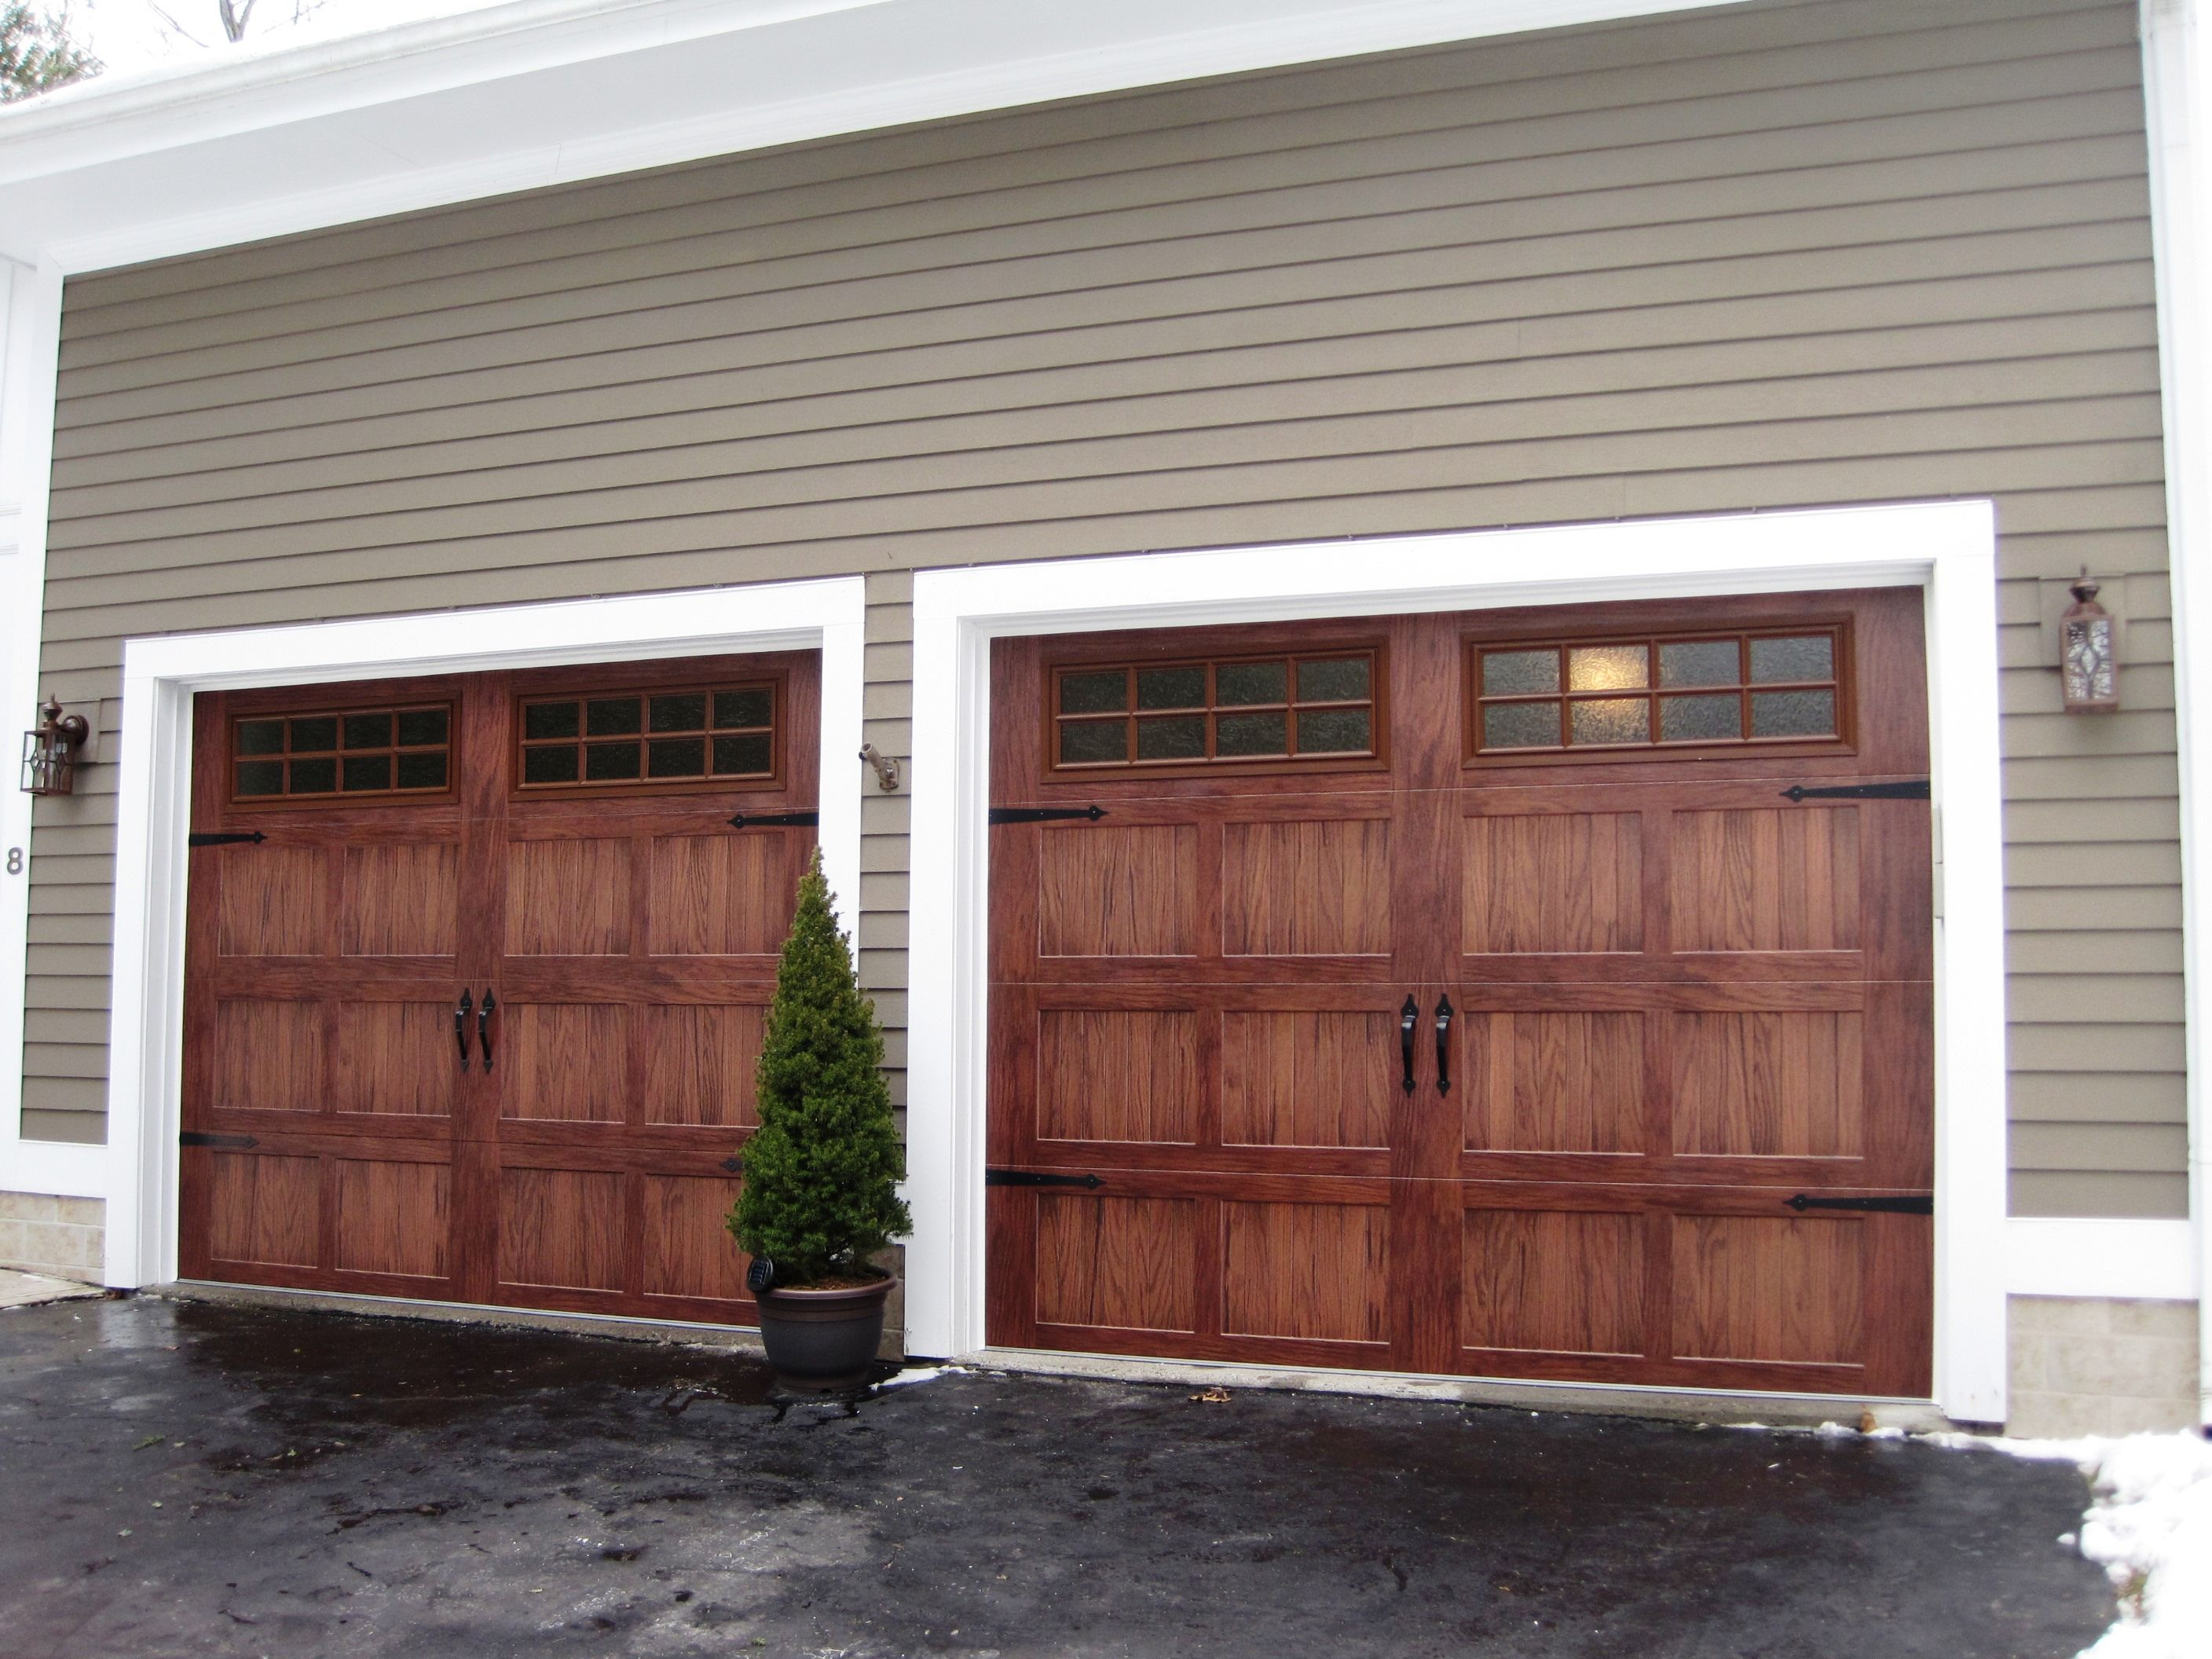 Garage Doors Chi Overhead Doors Garage Door Styles Wood Garage Doors Wooden Garage Doors